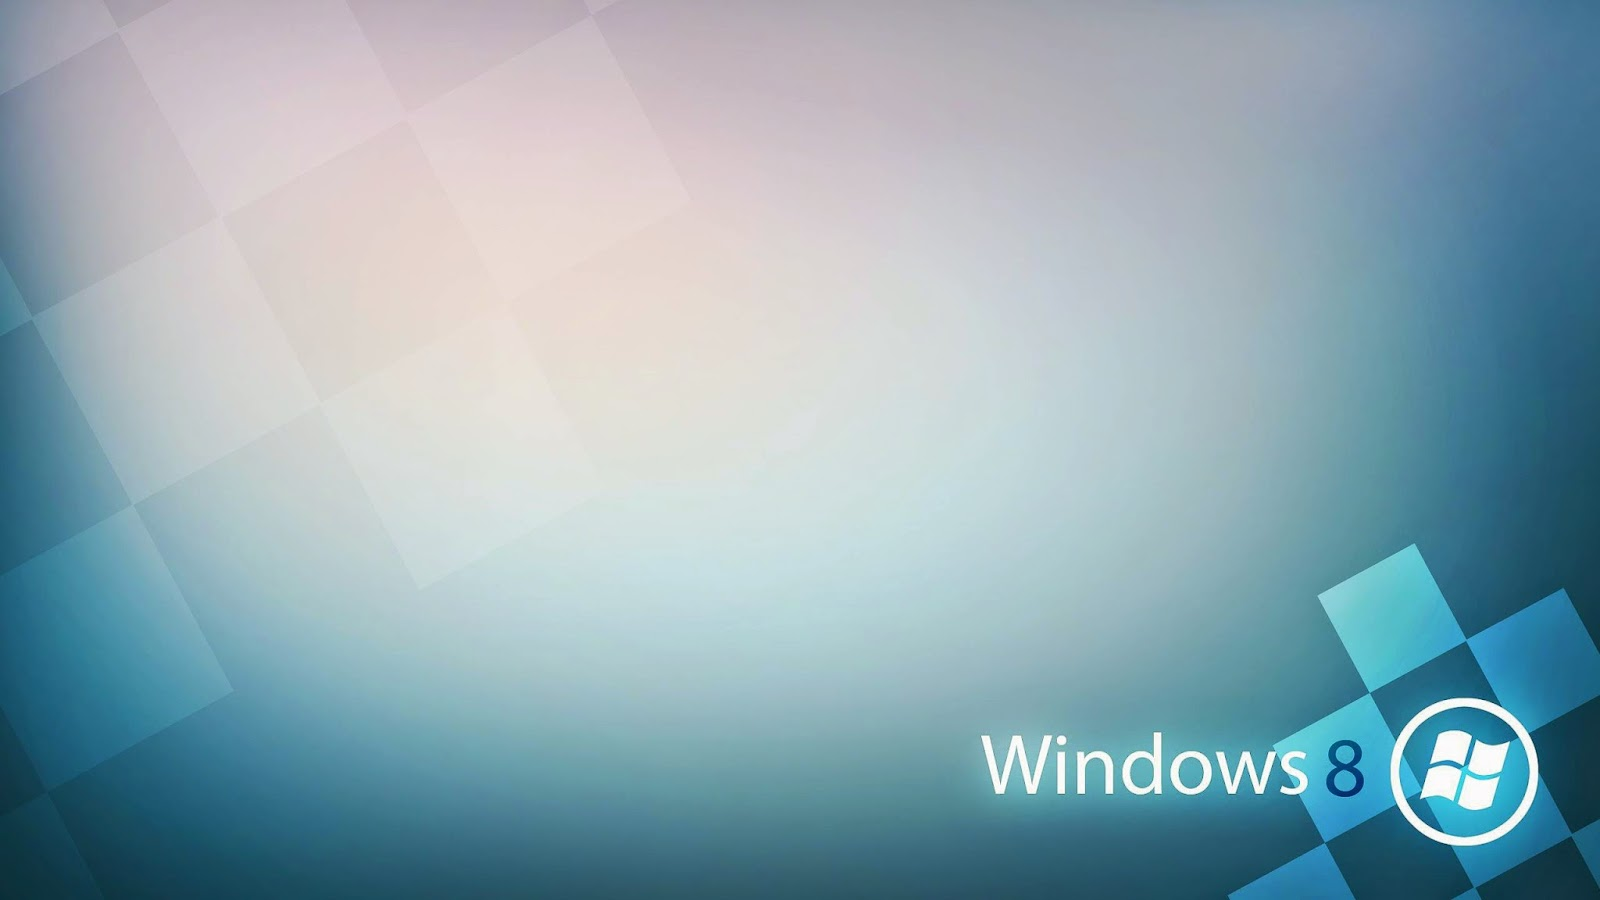 Windows-8-new-latest-2015-abstract-wallpaper-collection-free-download.jpg